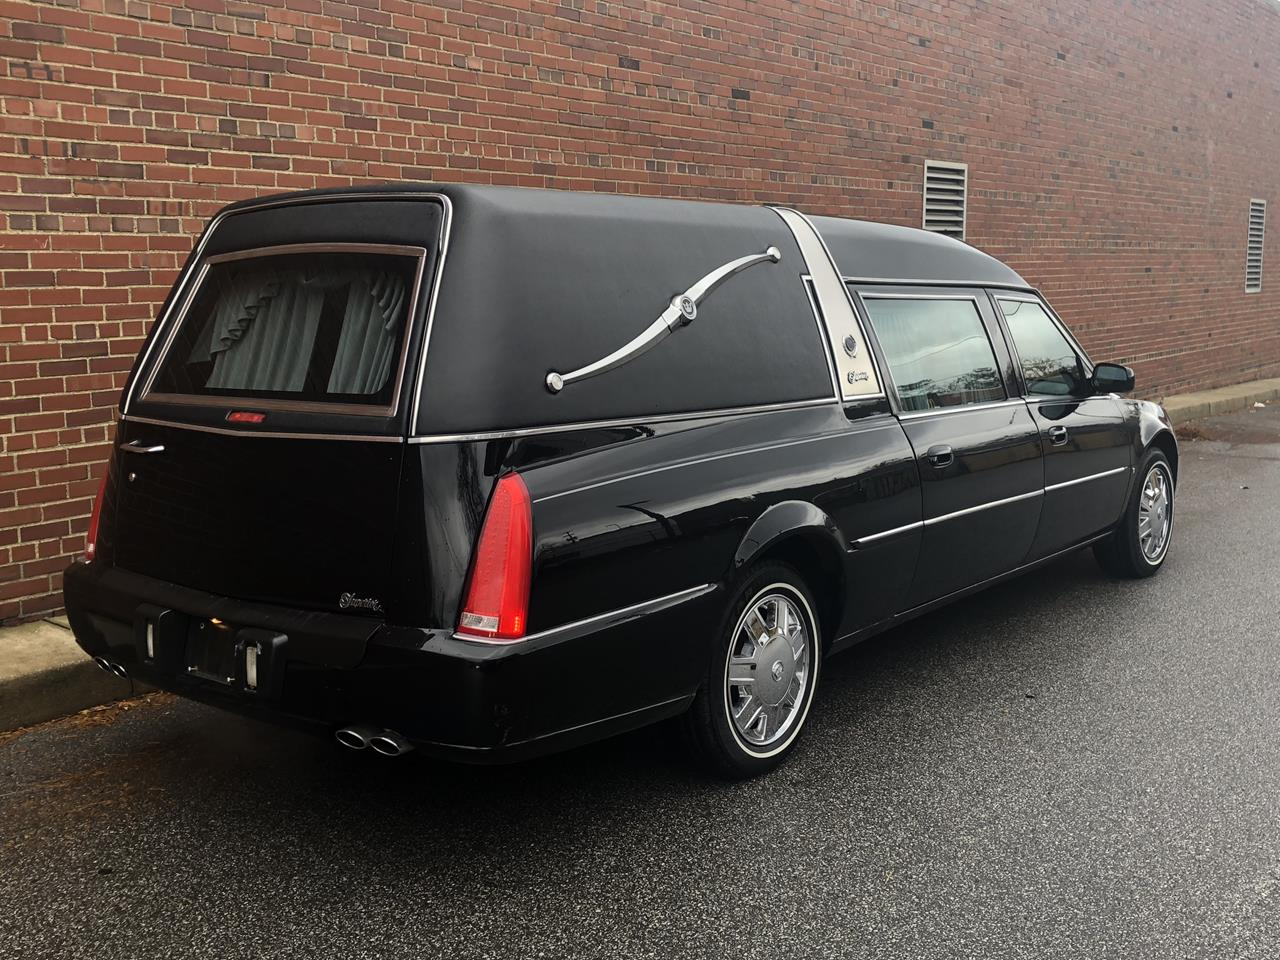 2006 Cadillac Superior Crown Sovereign Hearse 93 3